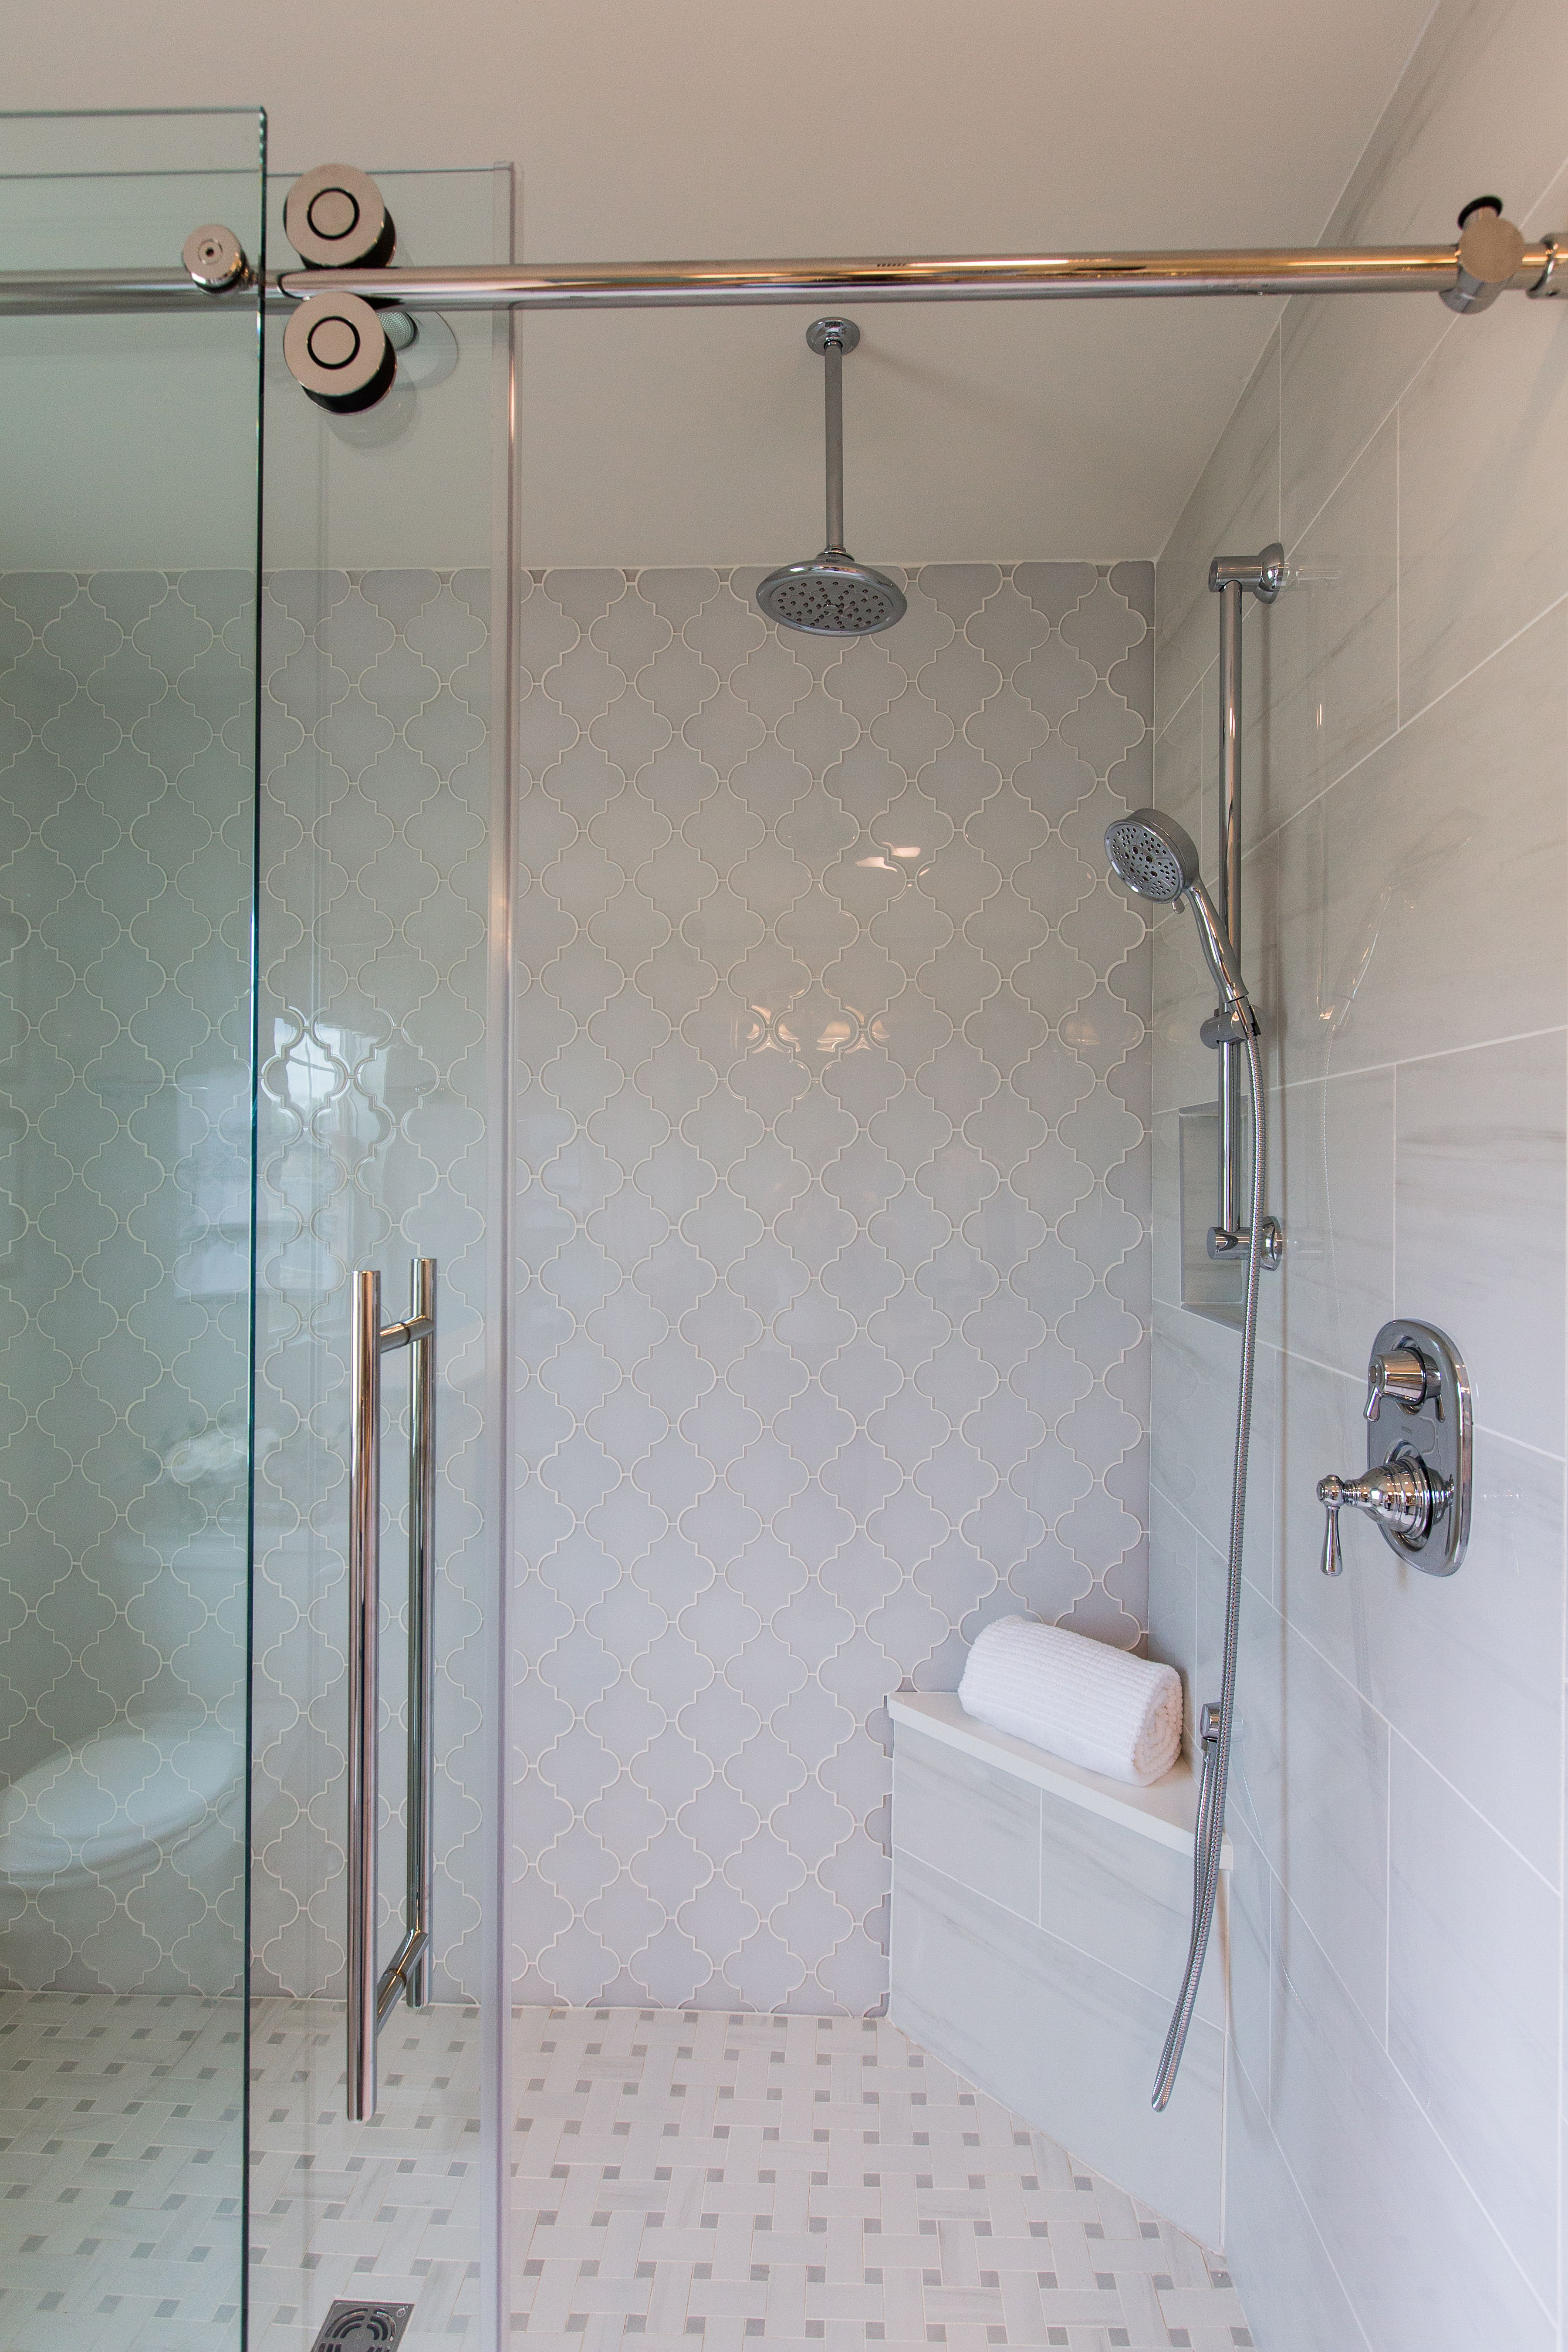 Dream Home Walk In Shower Tile On Floor And Walls Diamond Style